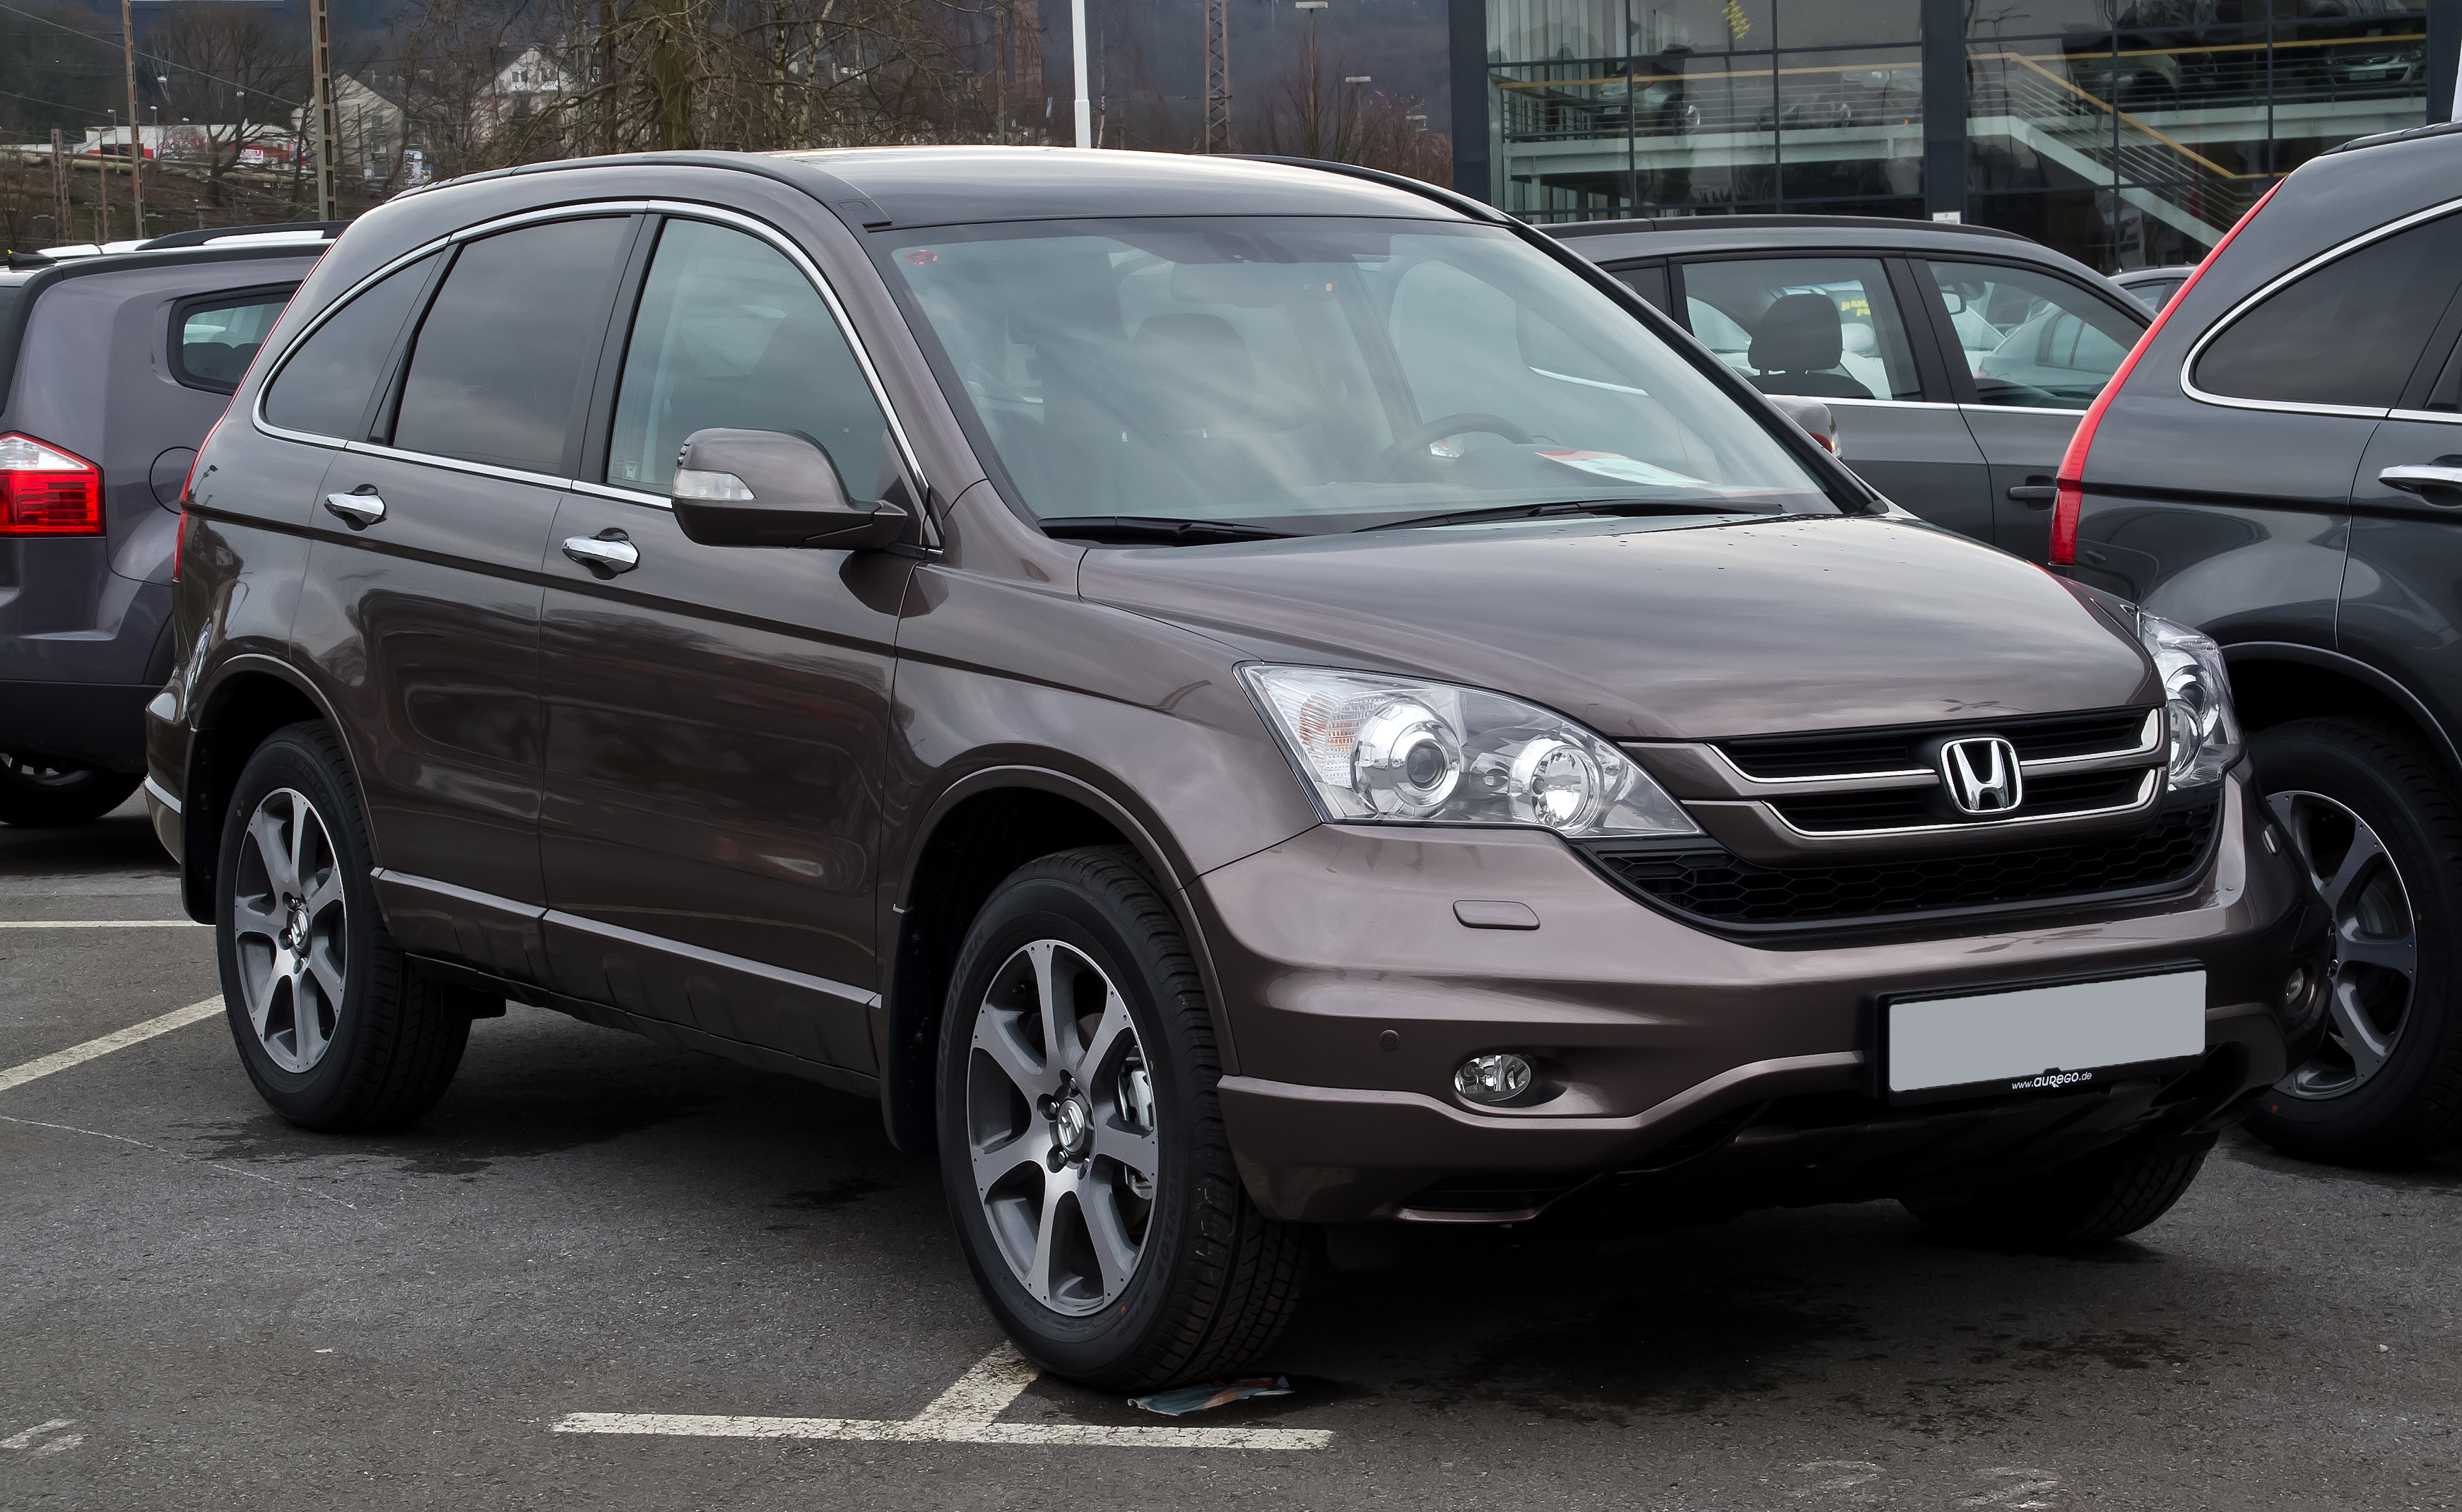 Honda Cr V Used Cars For Sale Scotland